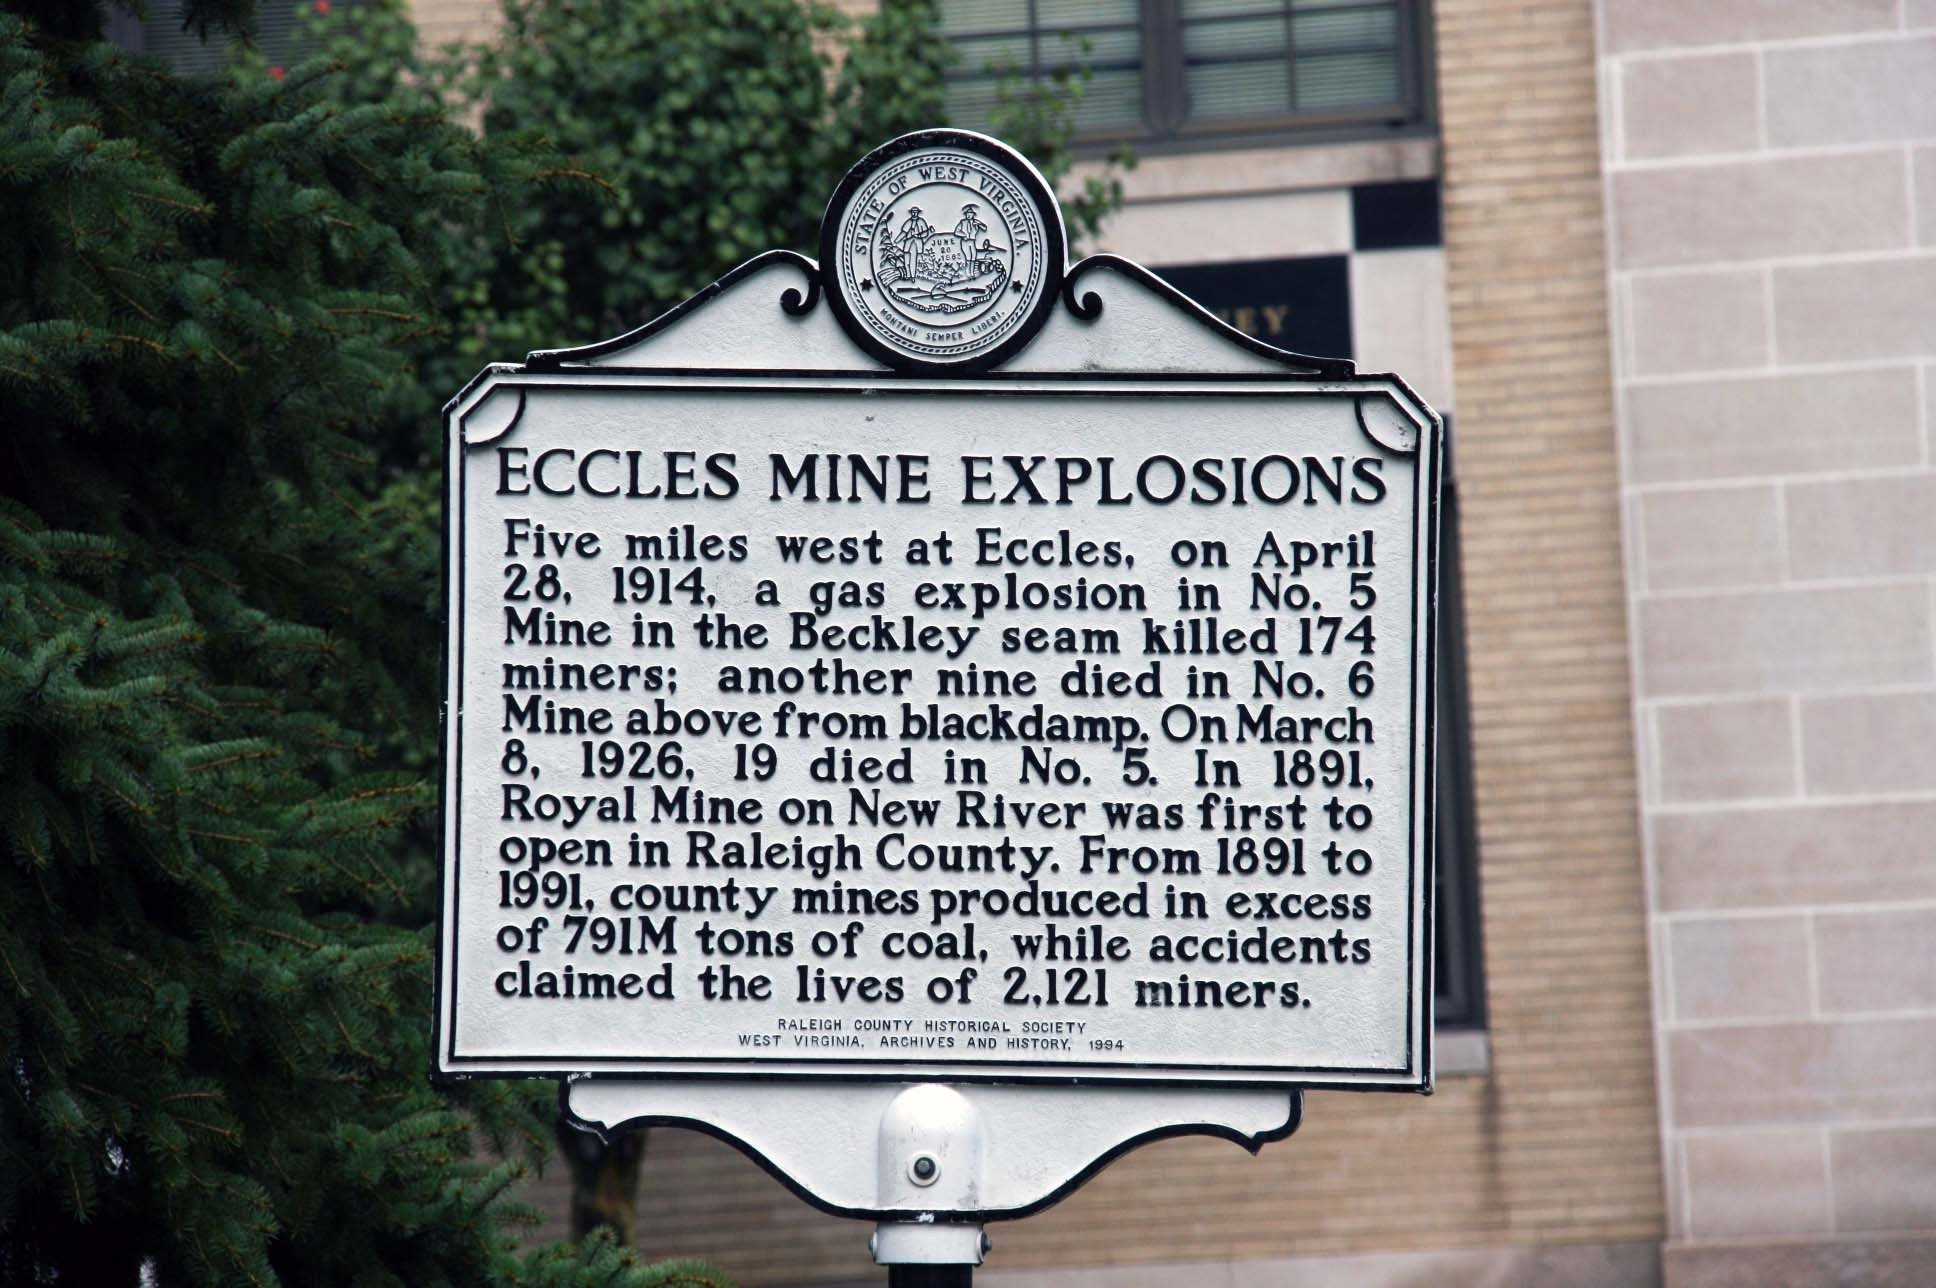 Another marker commemorates the 1914 and 1926 Eccles mine explosions, which occurred about five miles away. Image obtained from the Historical Marker Database.